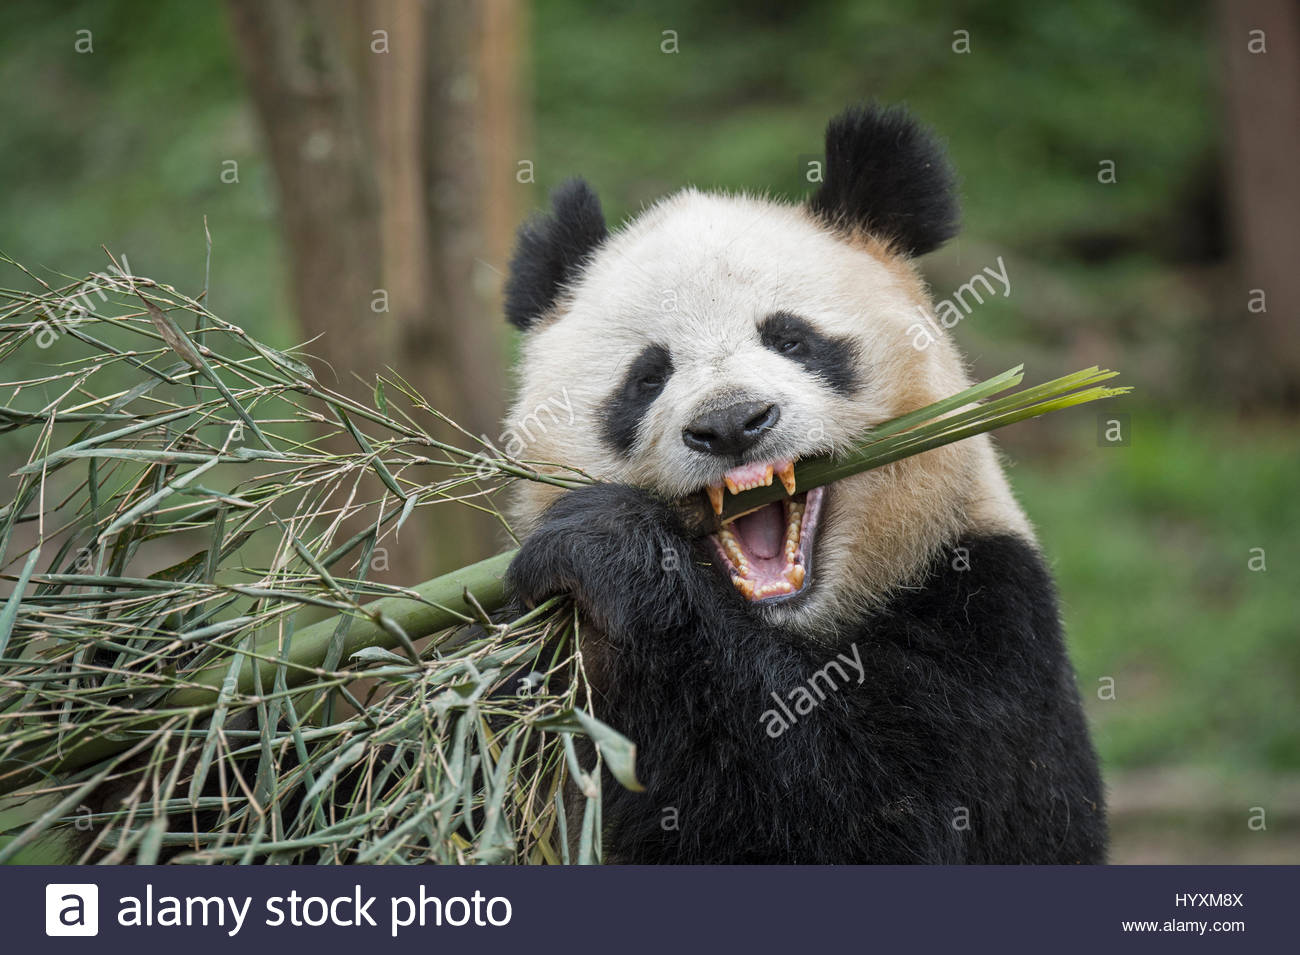 A giant panda eats bamboo in her enclosure in the overseas-born section at the Bifengxia Panda Base. - Stock Image